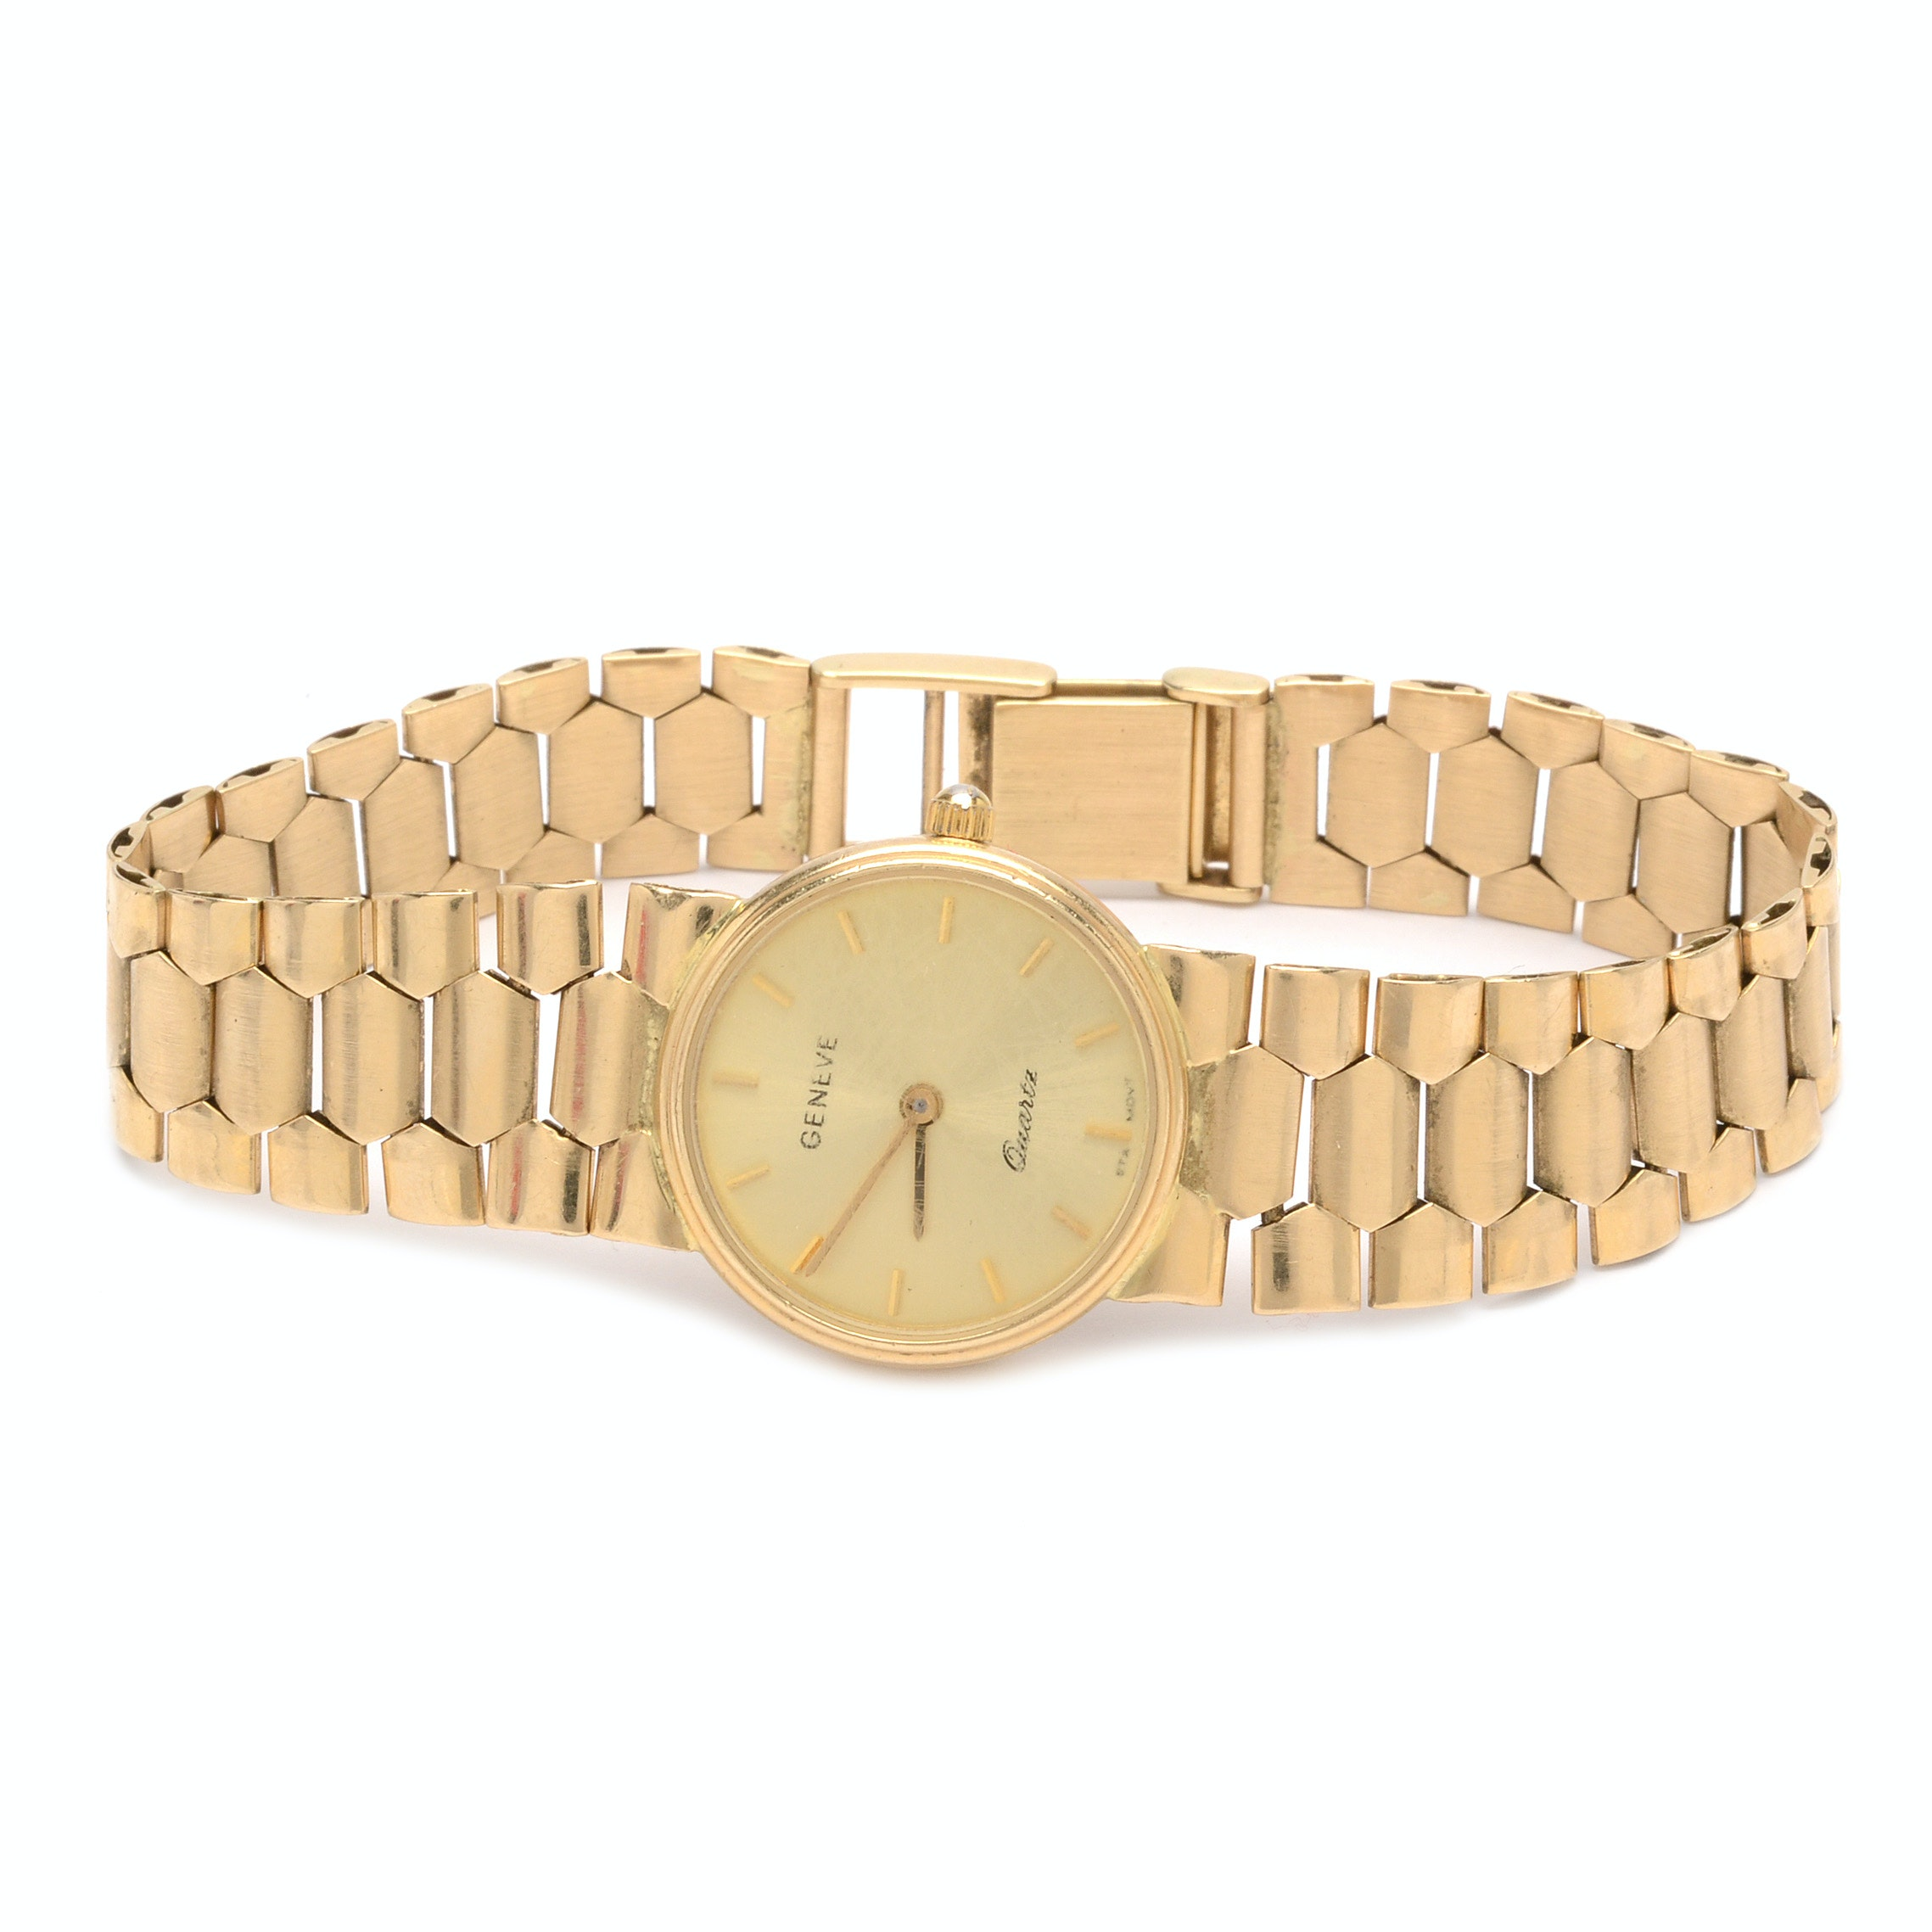 14K Yellow Gold Geneve Quartz Wristwatch